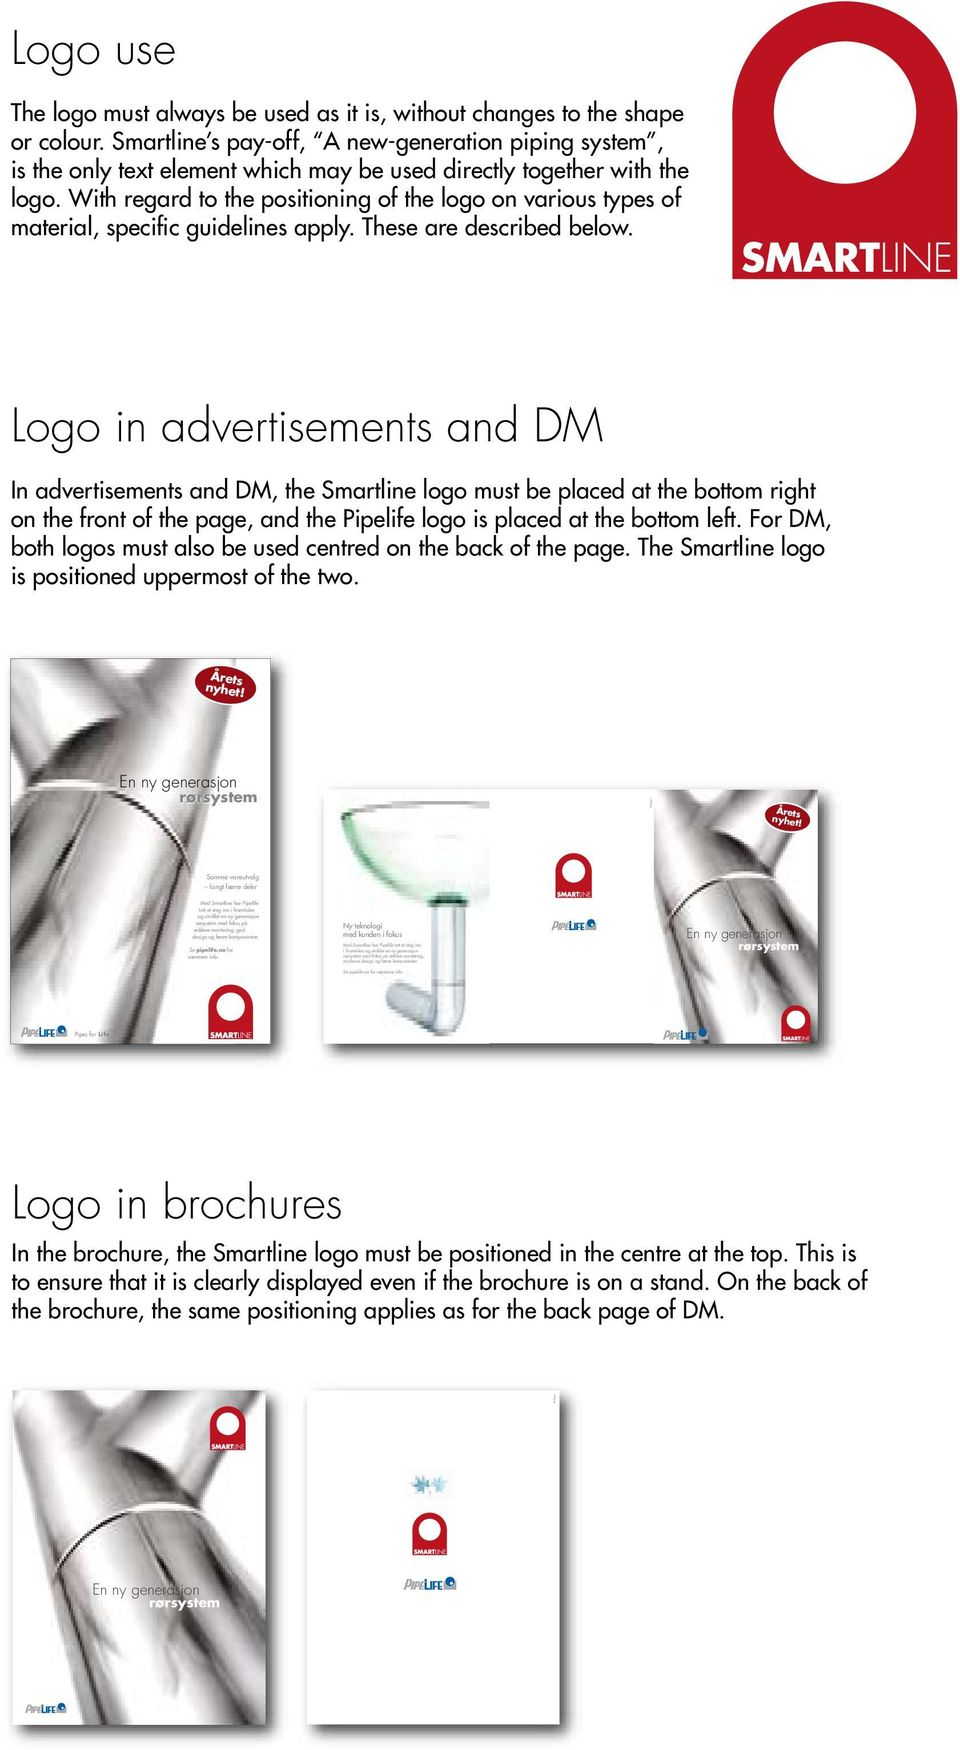 With regard to the positioning of the logo on various types of material, specific guidelines apply. These are described below.